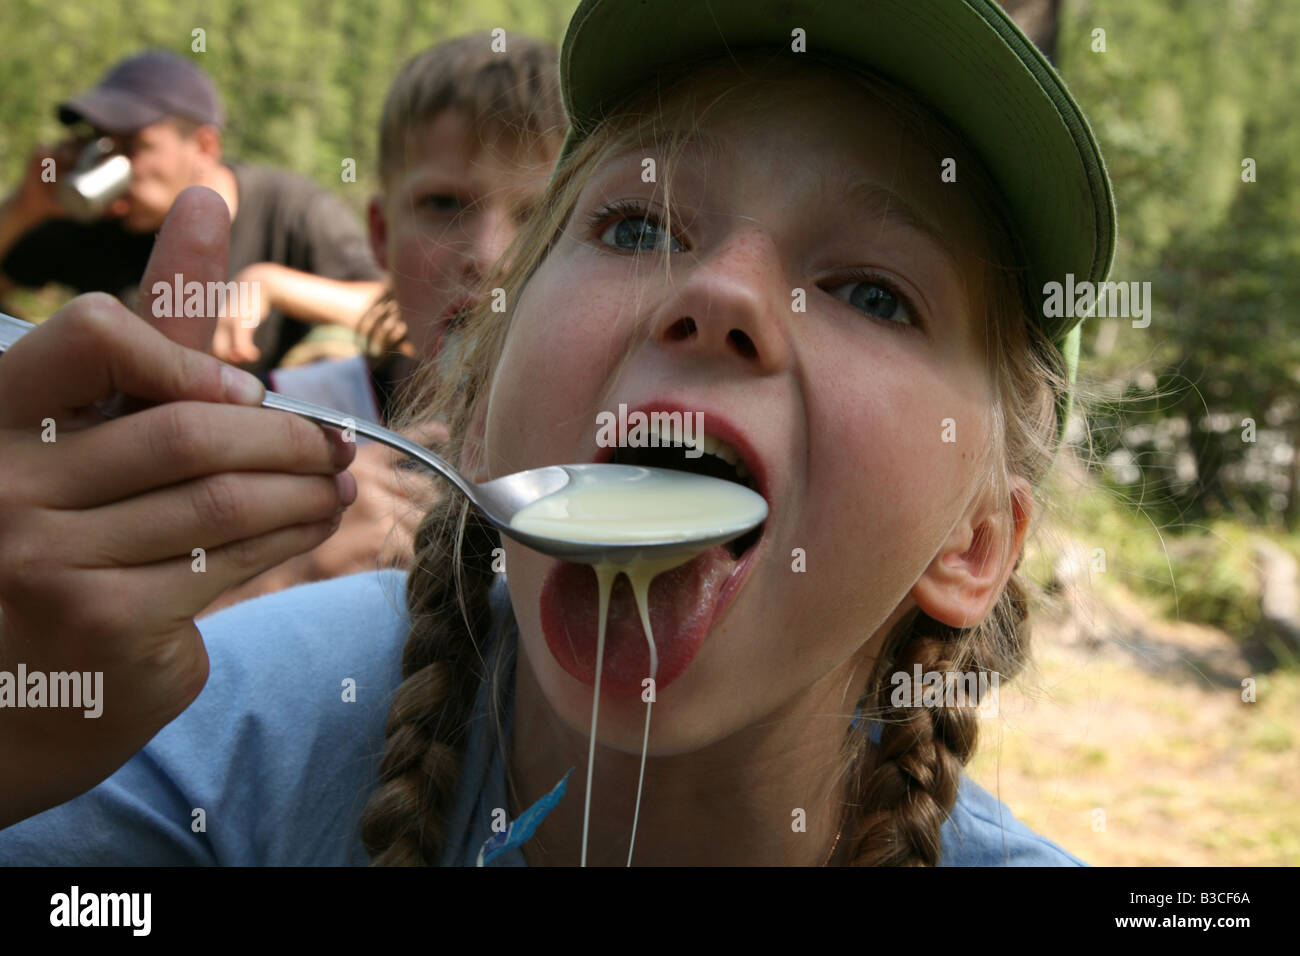 Young girl eating the spoon of condensed milk during a trekking in the Altai Mountains, Russia Stock Photo